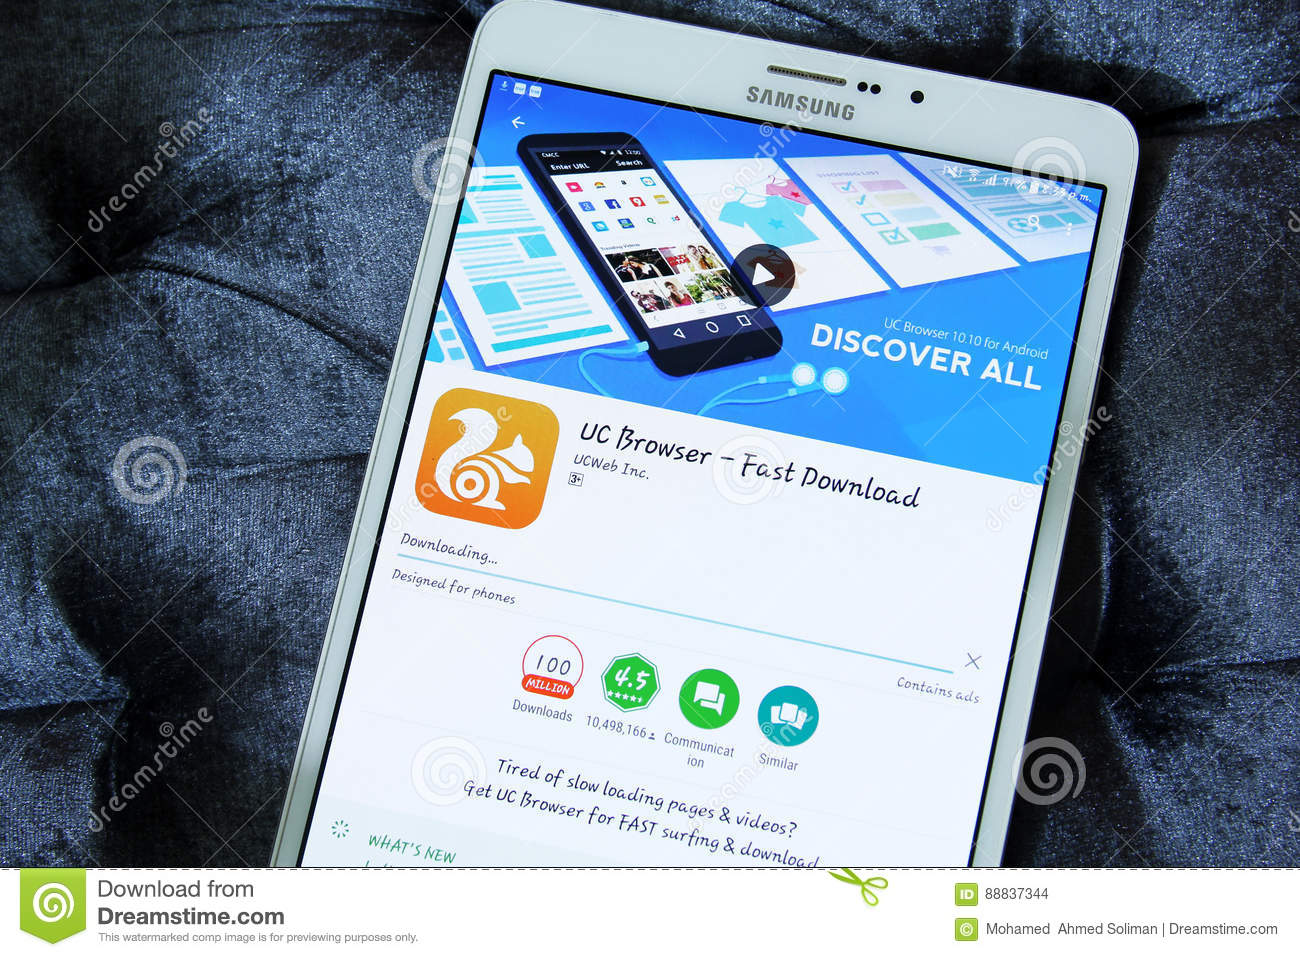 open play store and download uc browser